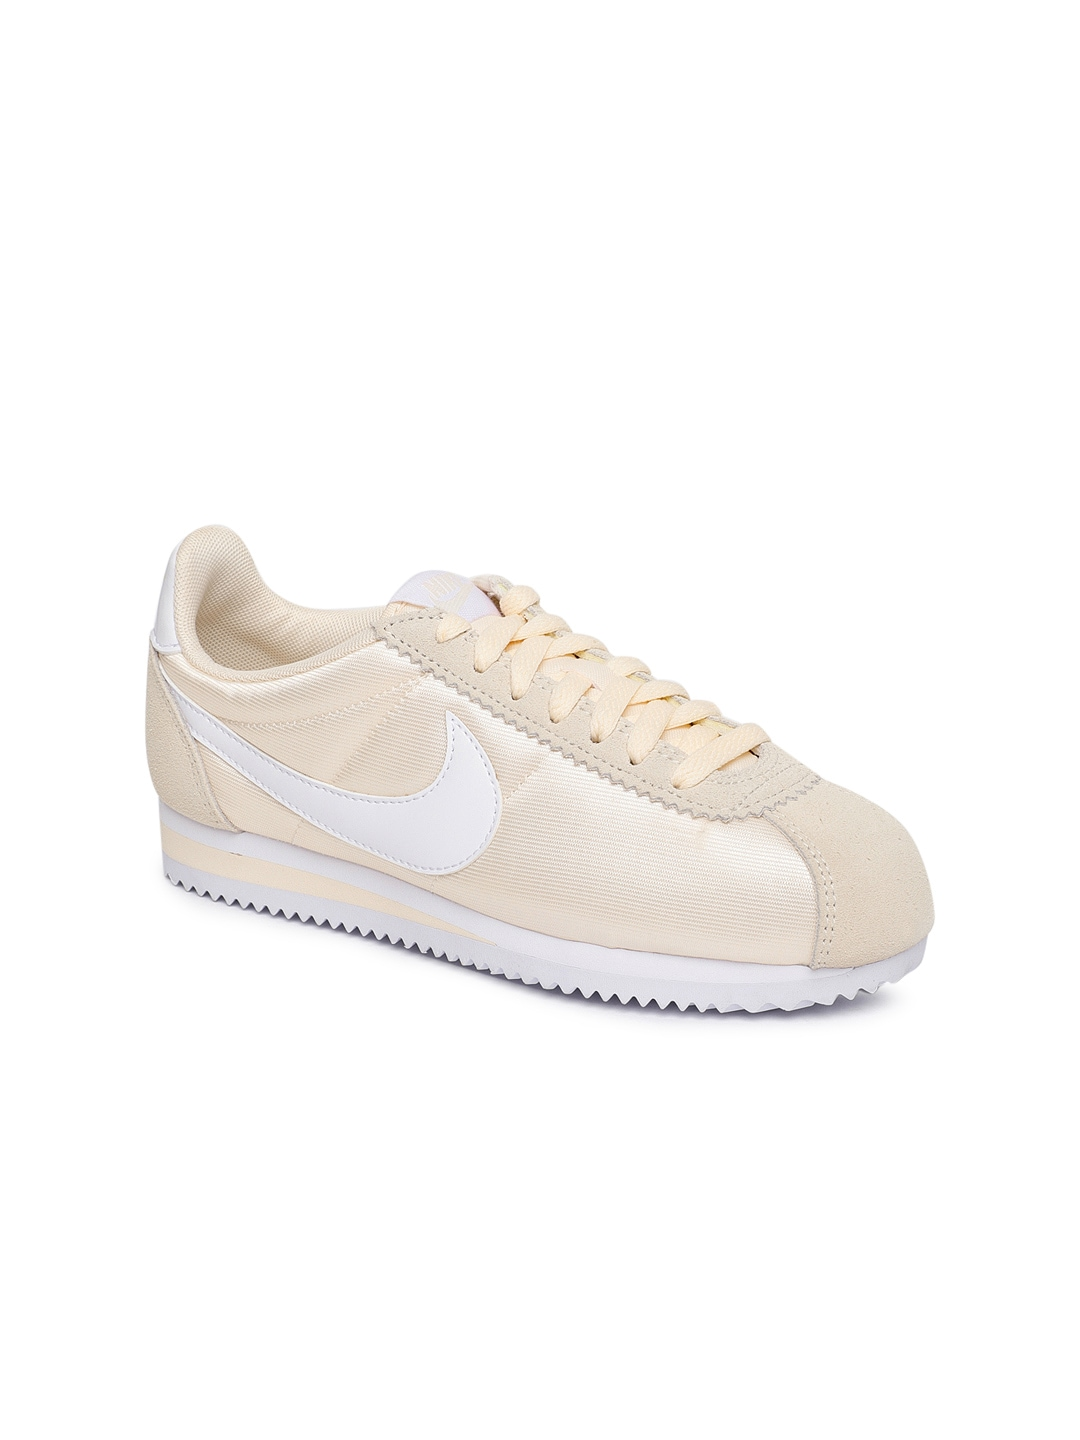 new arrivals 766cd c4638 ... coupon women sneakers. image. nike af5f0 e1ad5